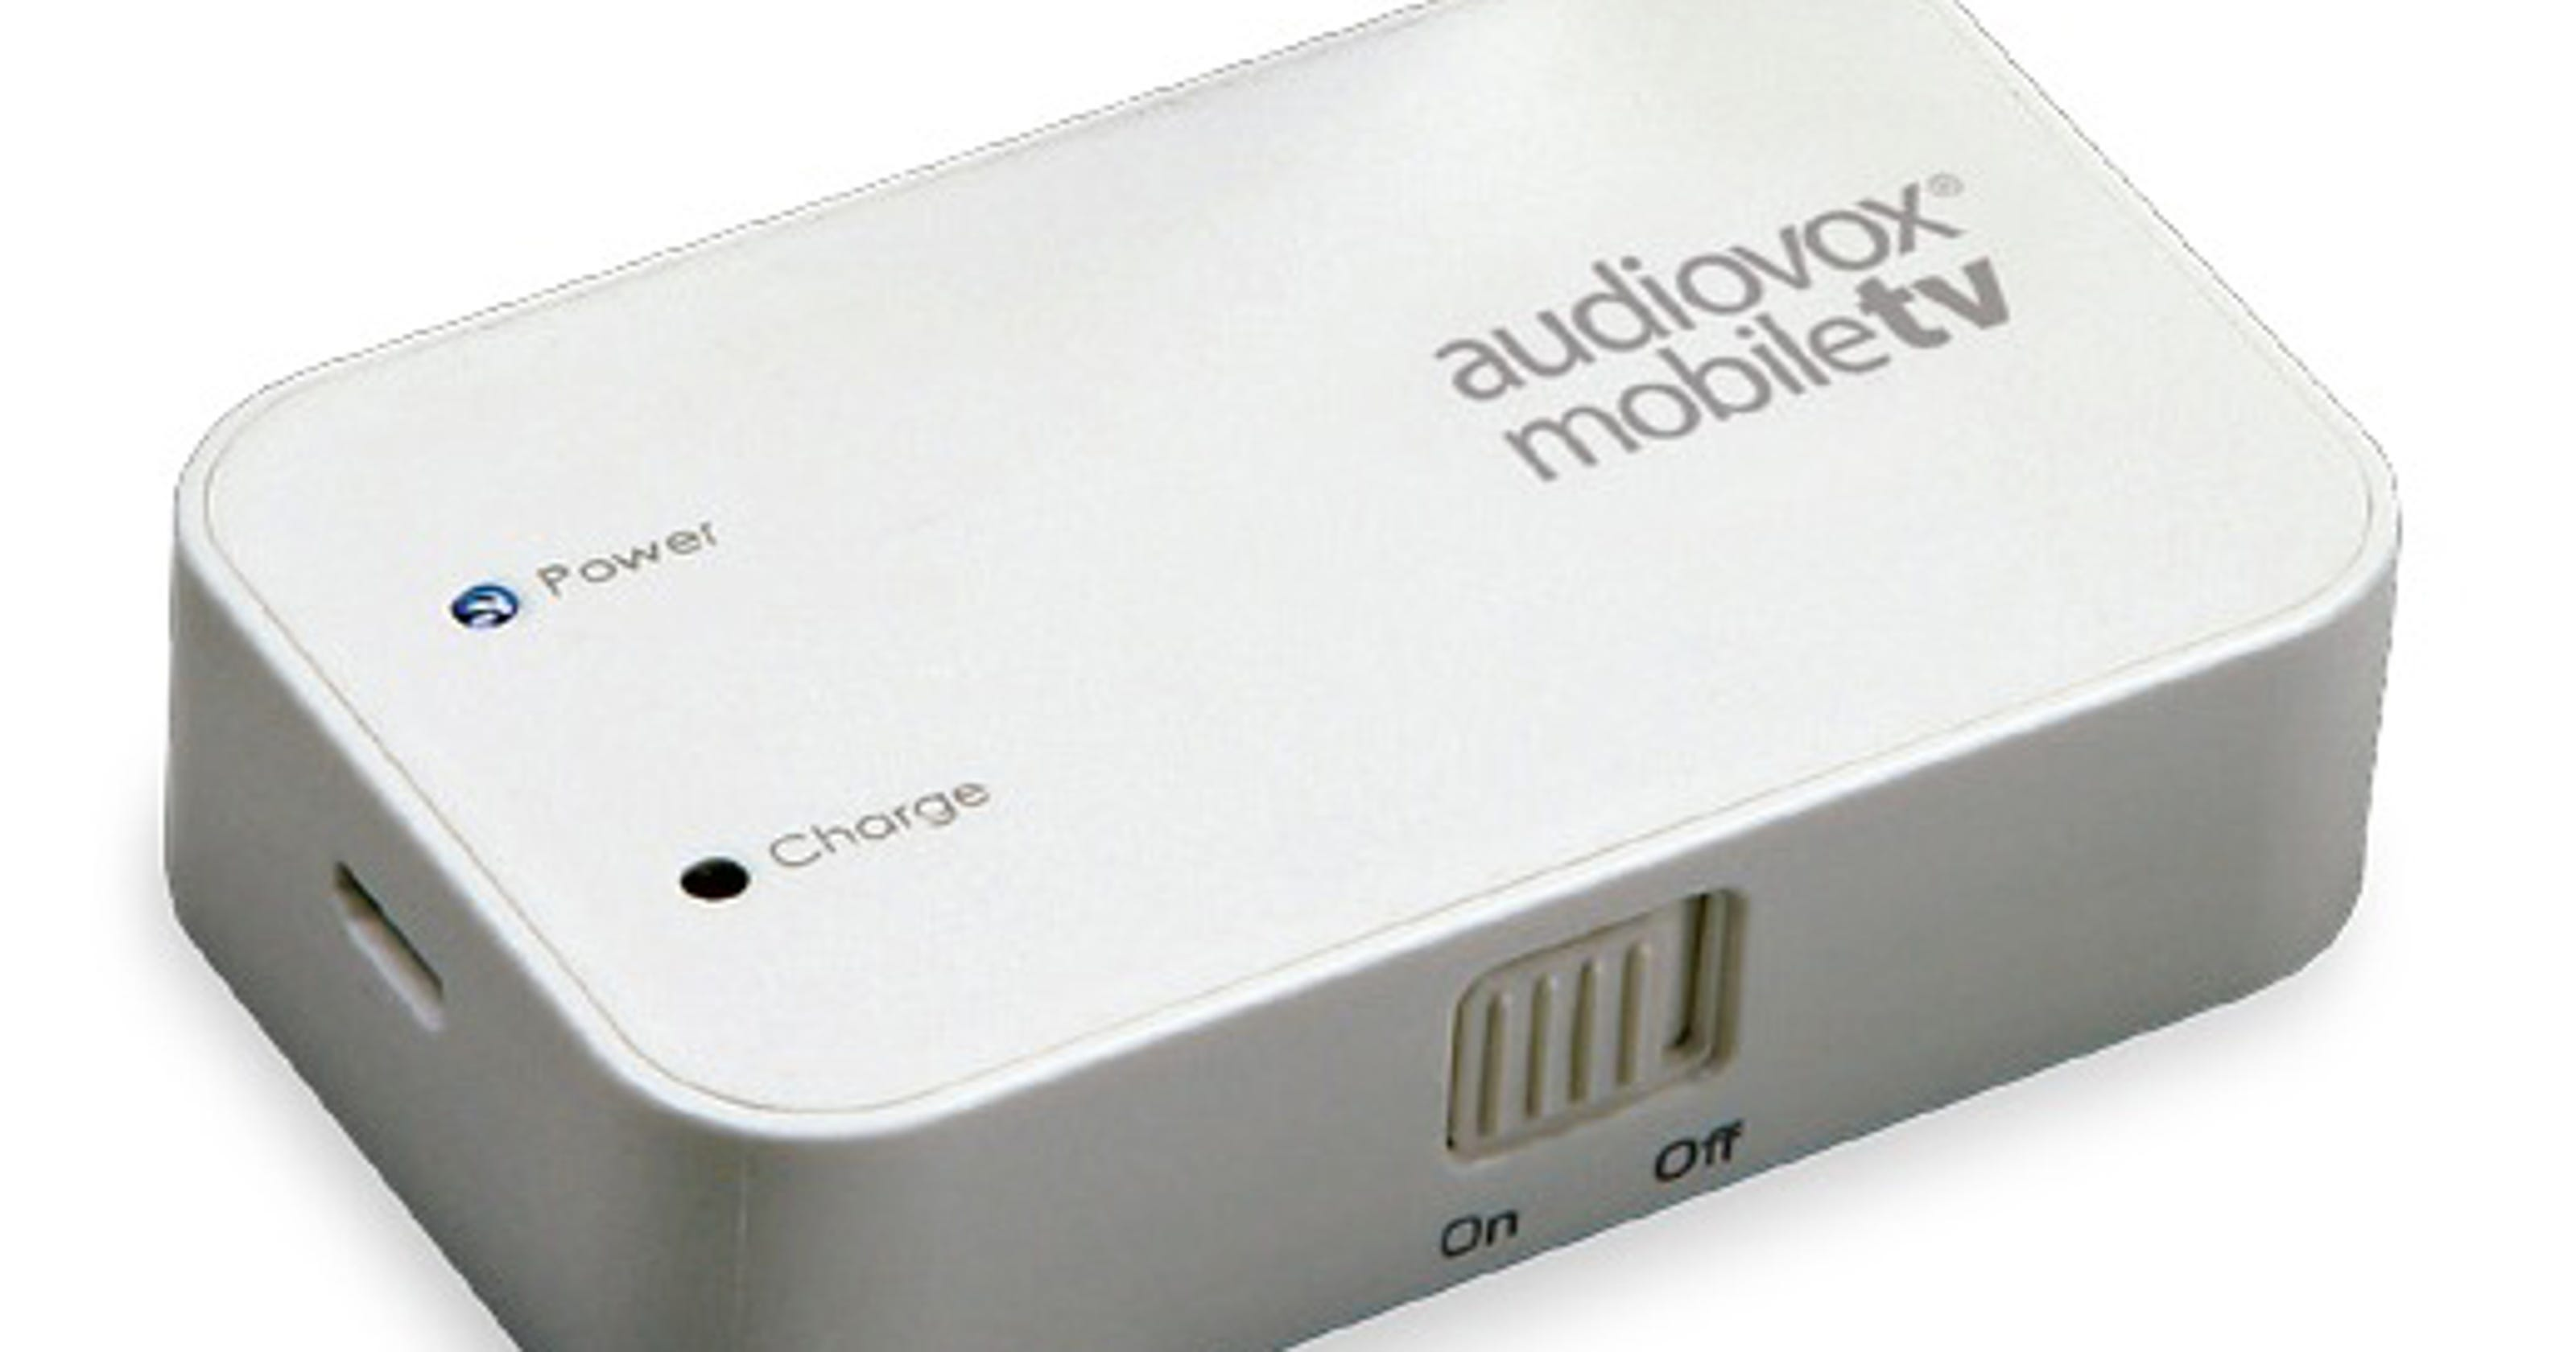 Audiovox turns smartphone or tablet into a TV